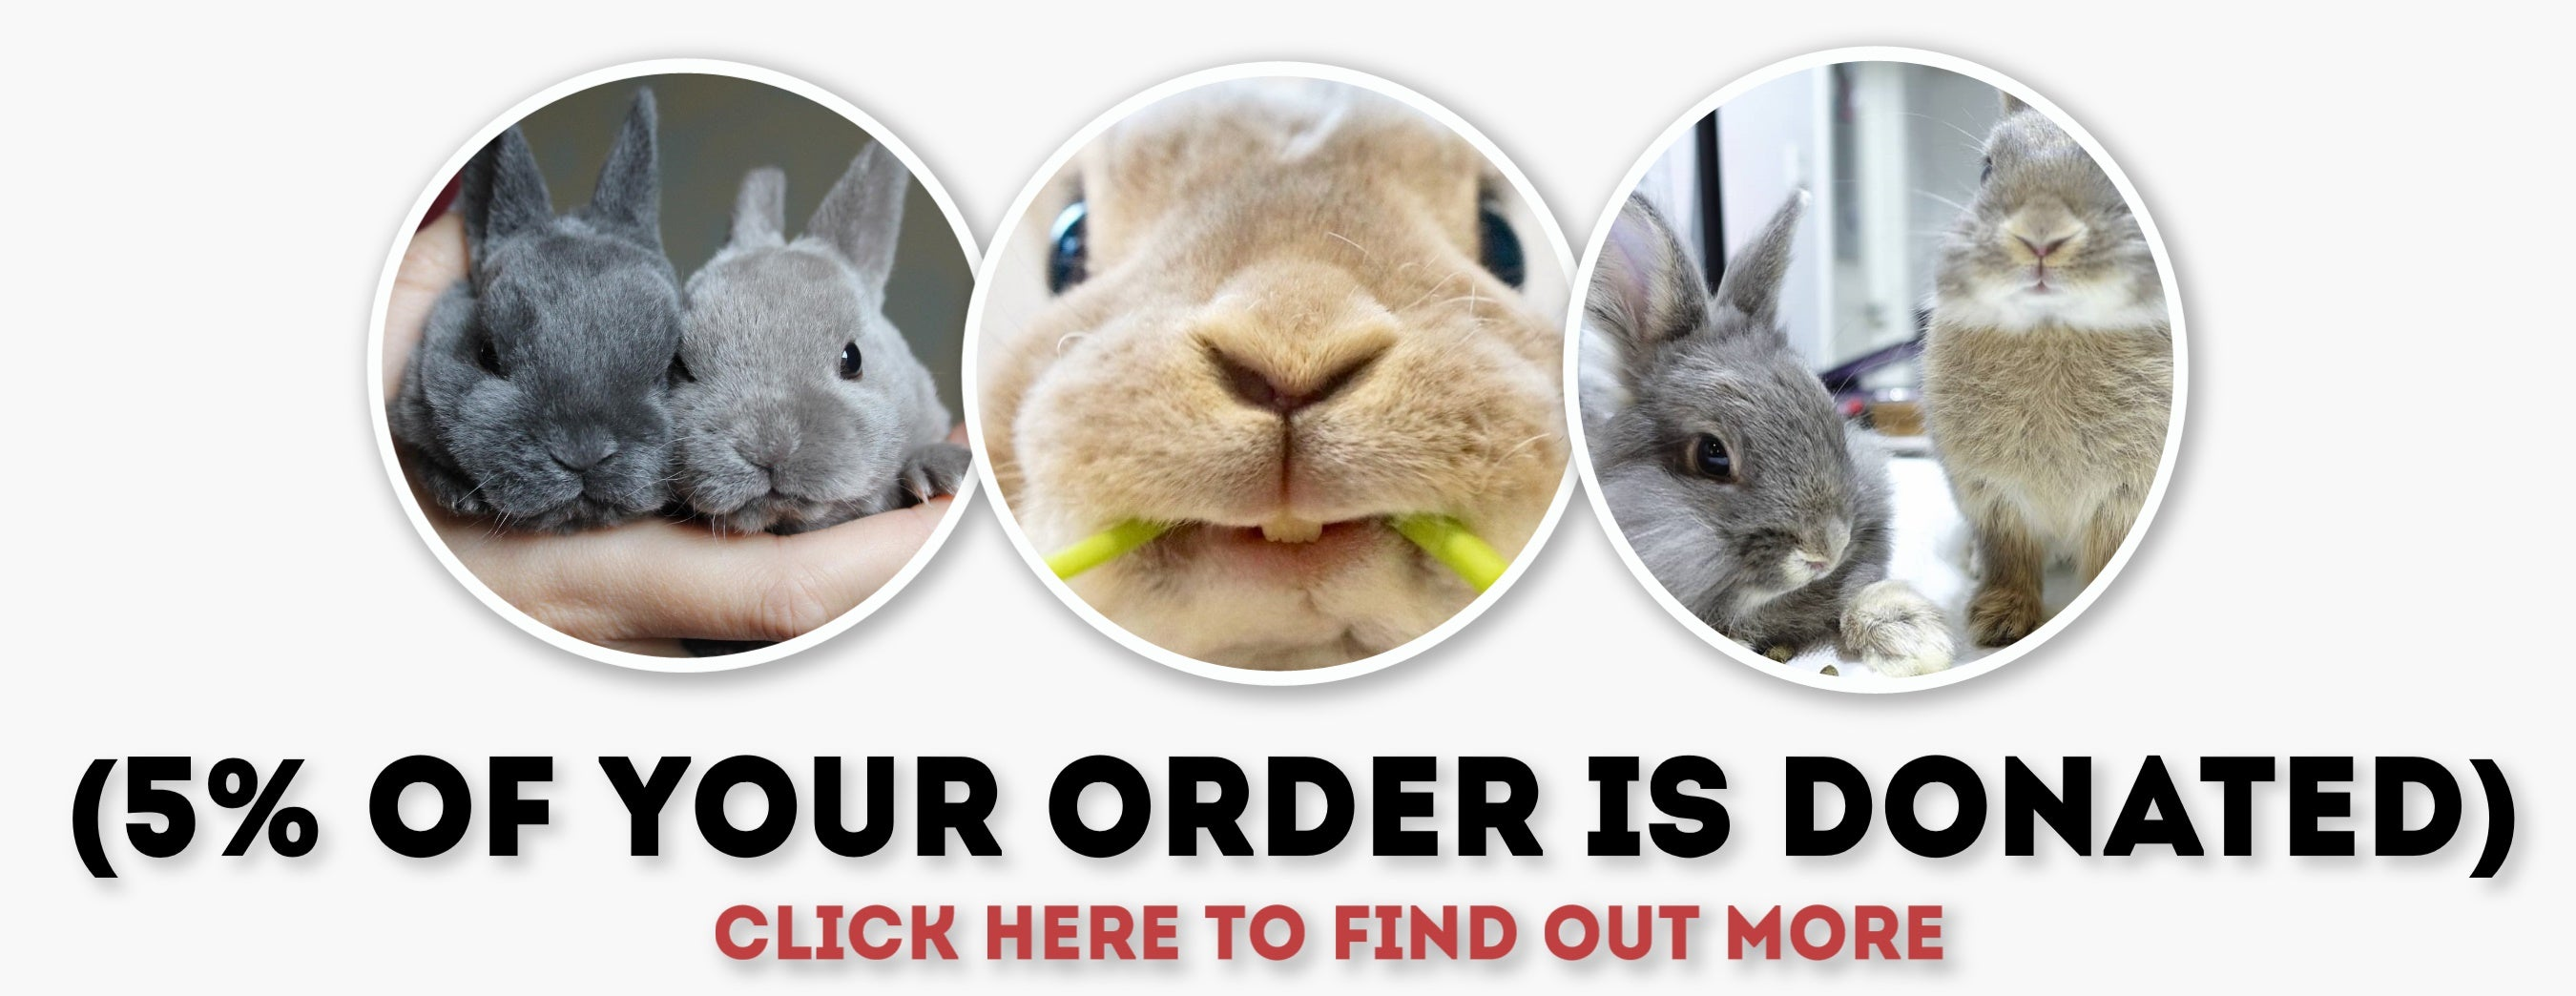 rabbit shop online store charity